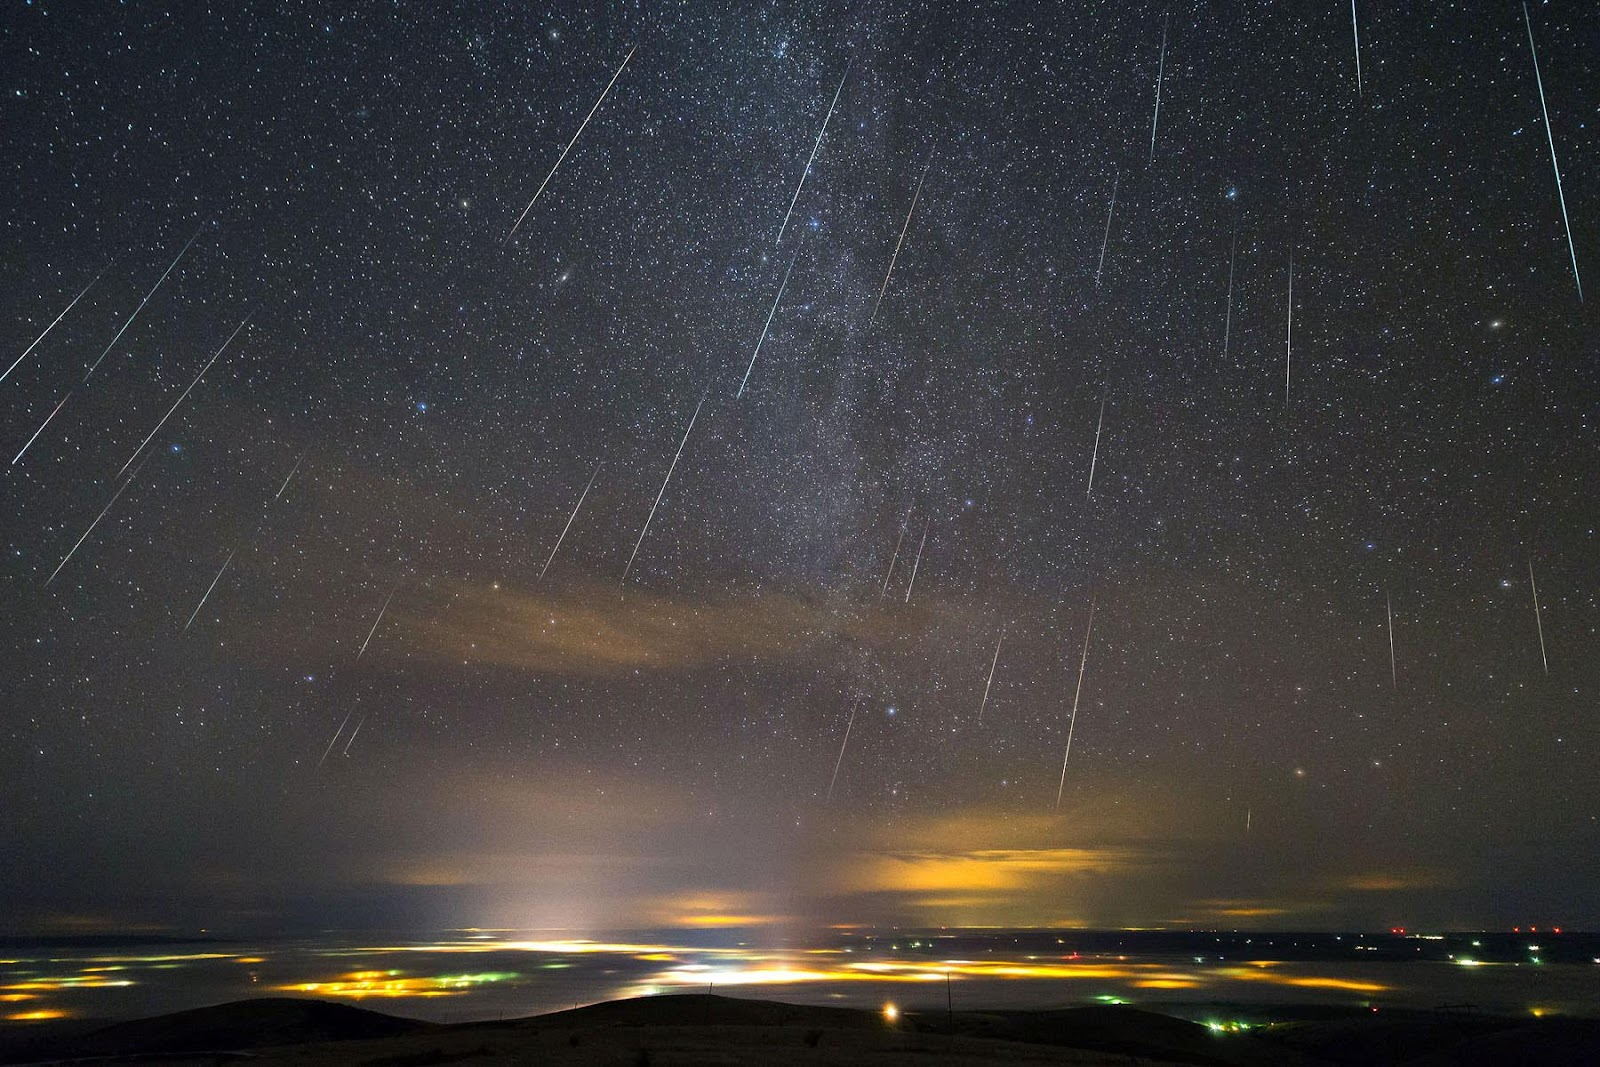 Don't Miss the Geminids this Weekend, Best Meteor Shower of the Year - Universe Today